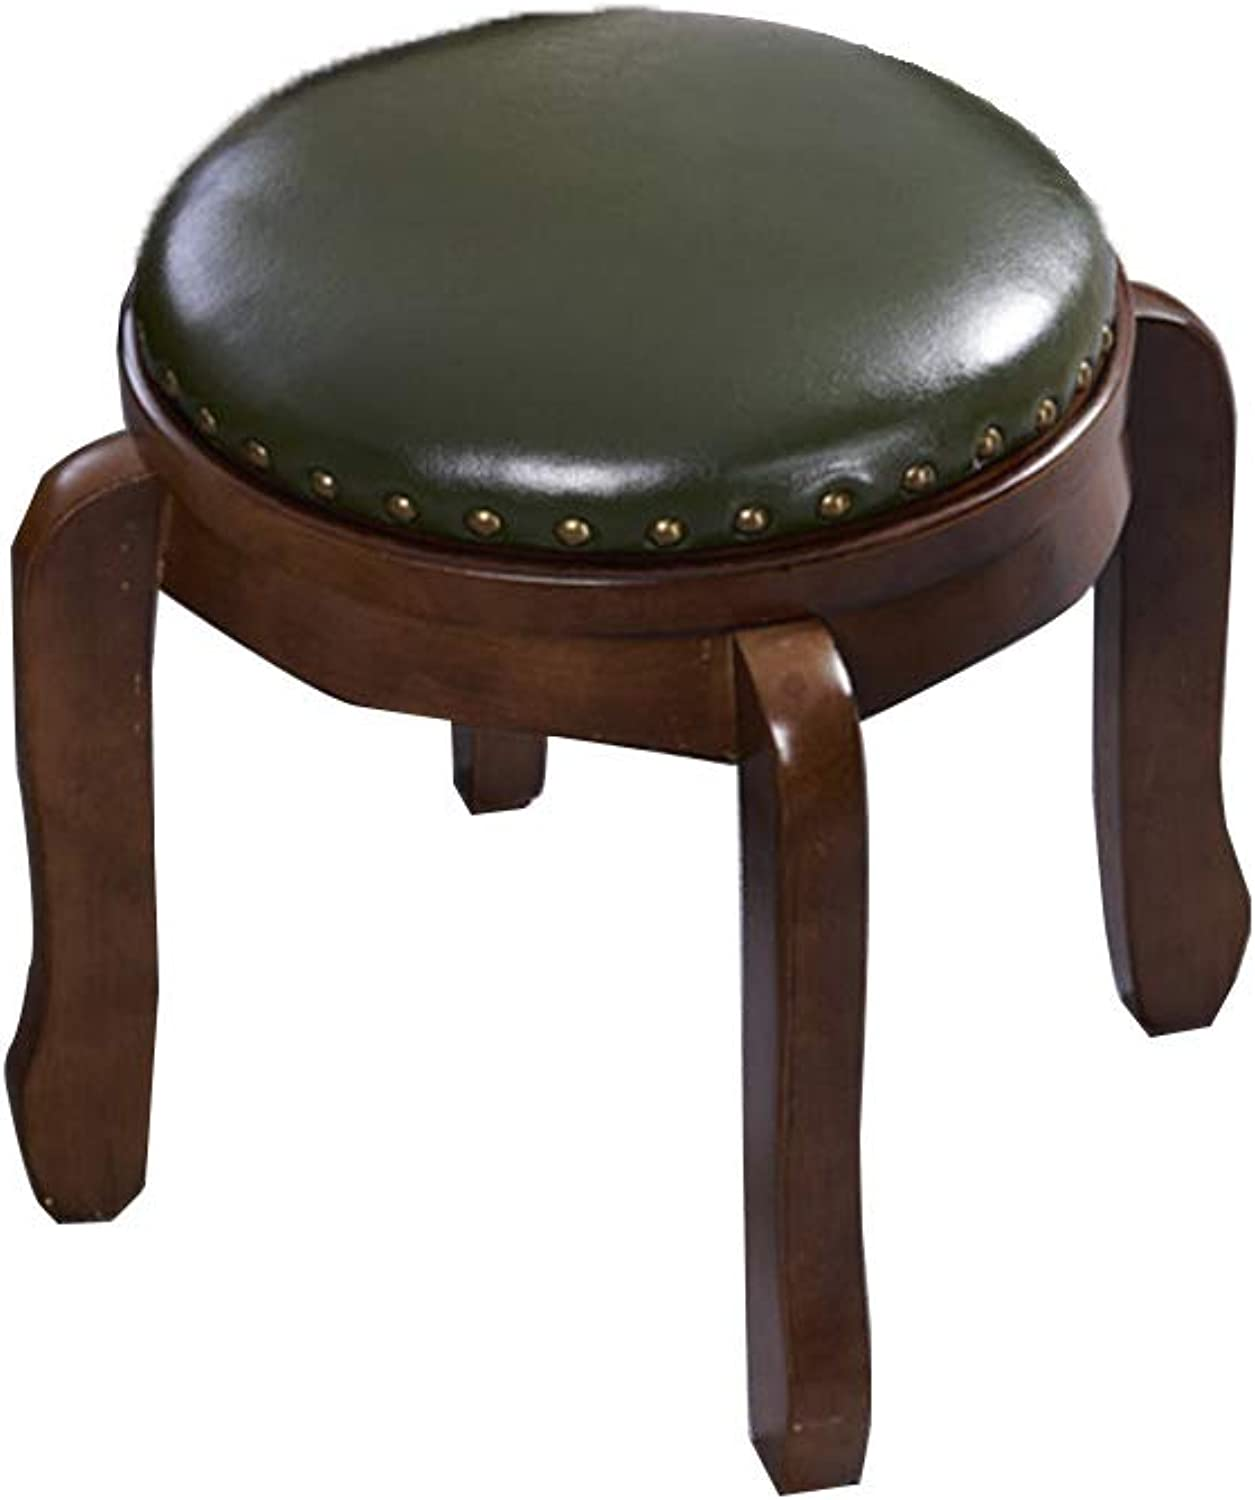 ZHAOYONGLI-stools Footstool shoes Bench Sofa Stool Change shoes Bench Wooden Stool Solid Wood Living Room Round Adult Stack Home Multi-function Stool Multifunction Household Creative